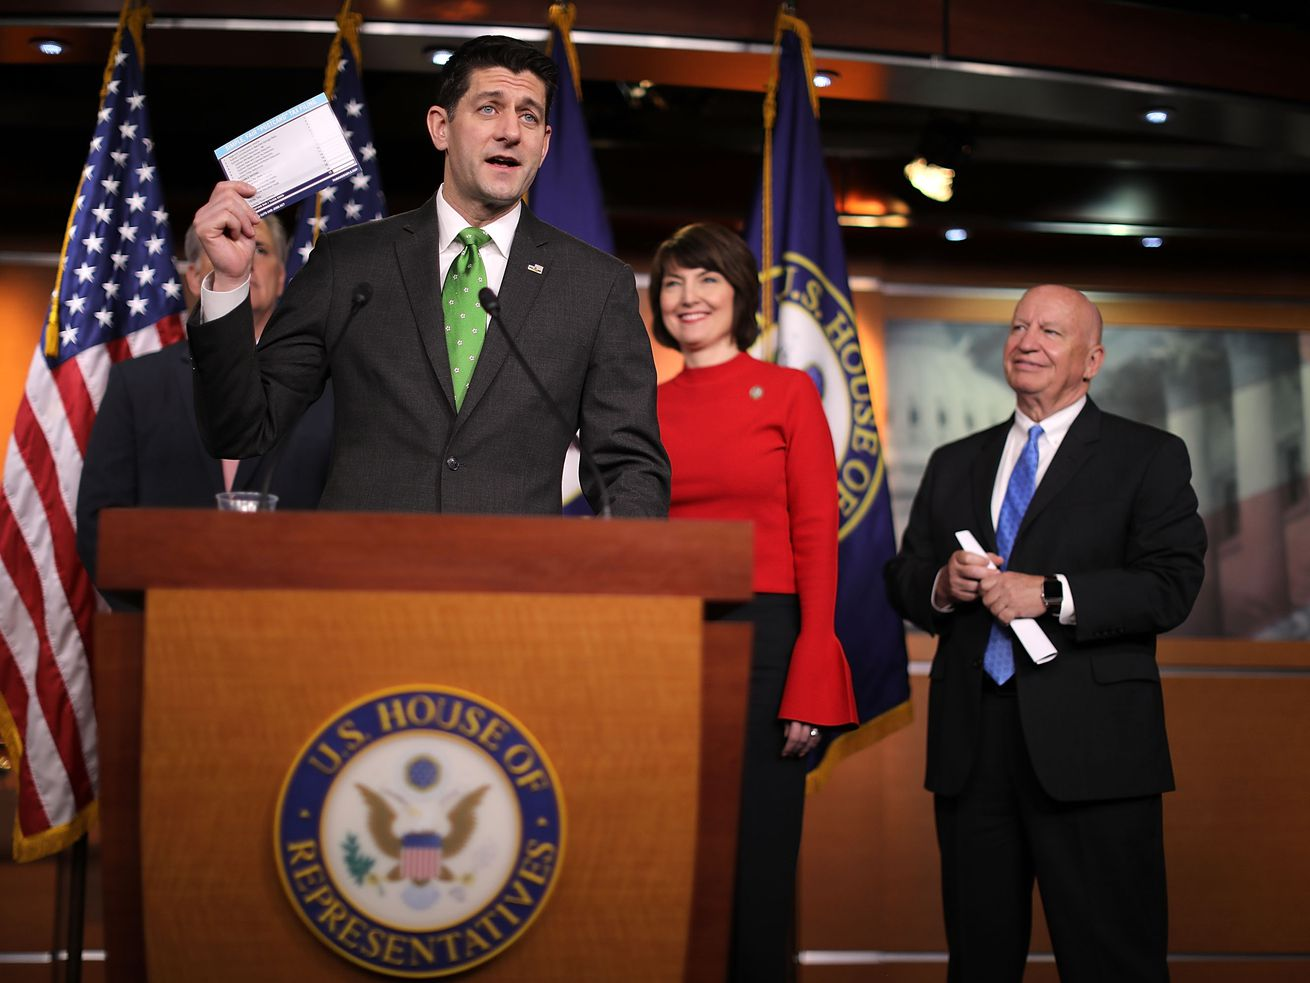 Speaker of the House Paul Ryan holds up an example of a proposed tax form at a press conference in April 2018.